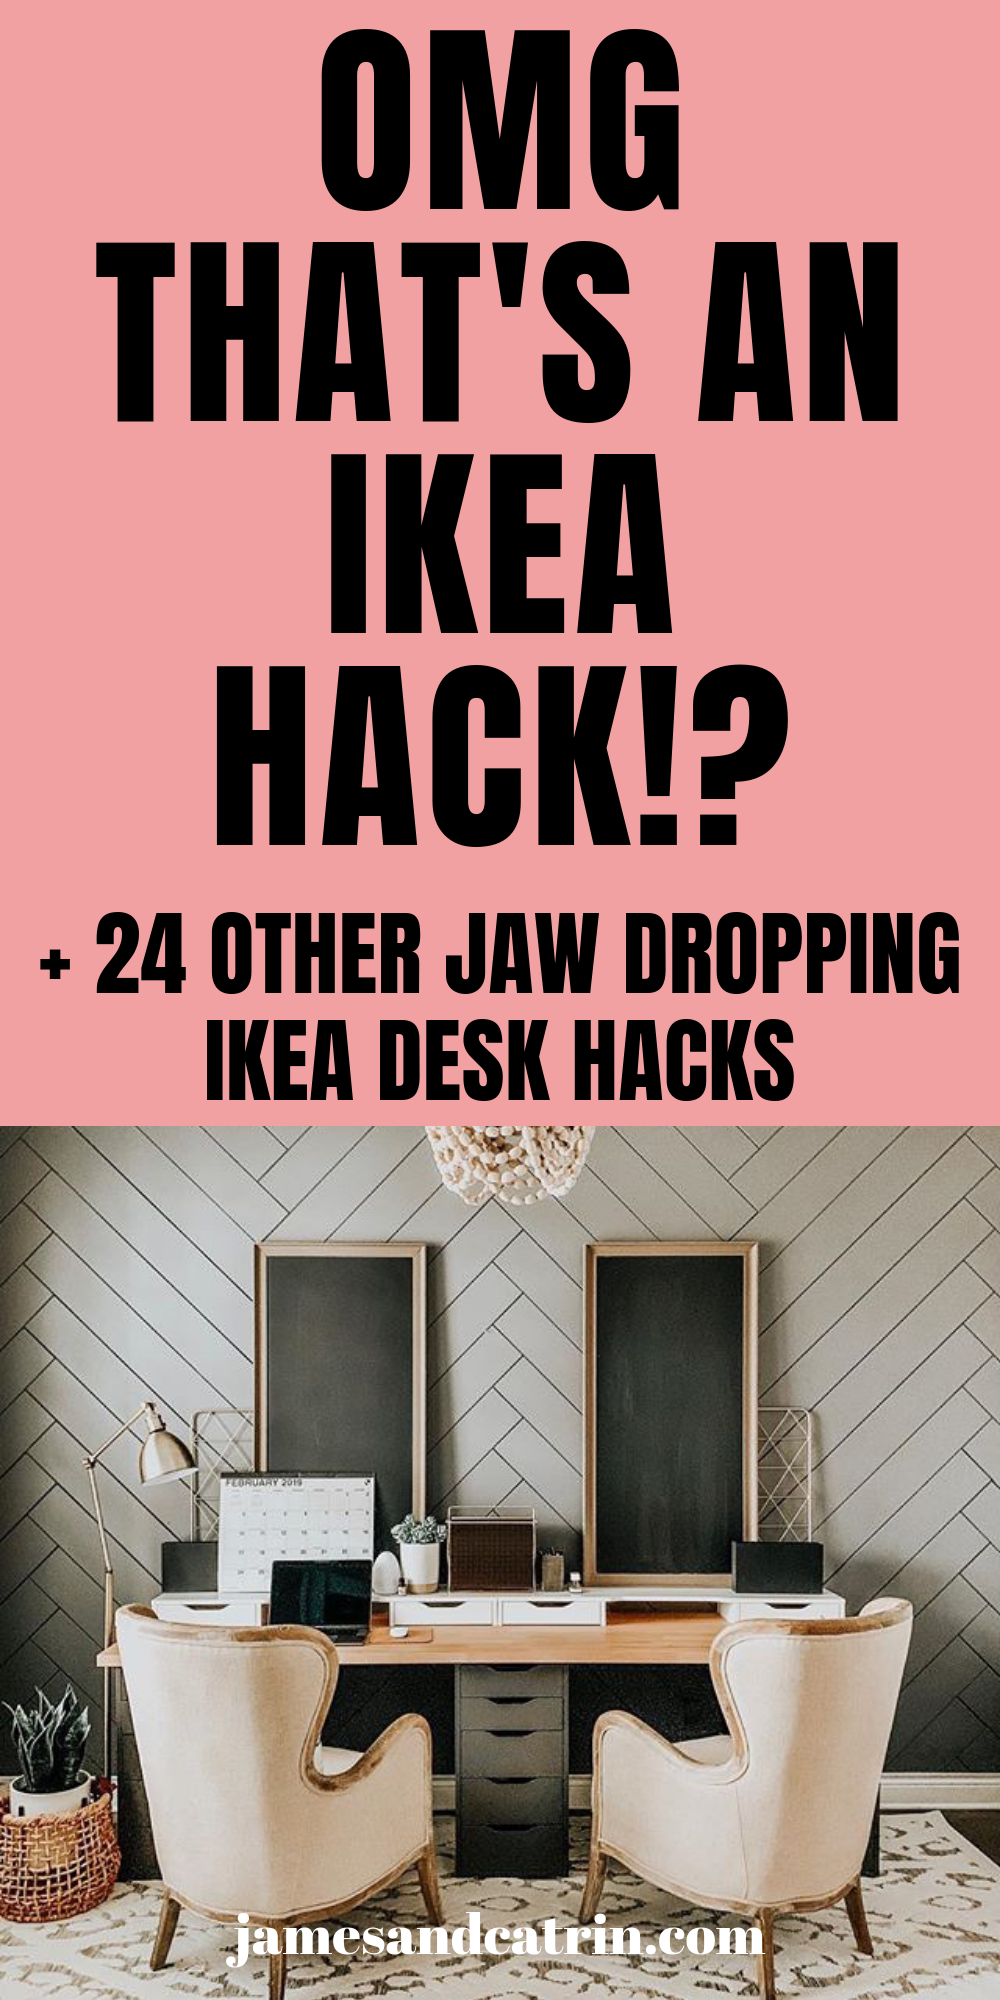 25 Ikea Desk Hacks That Will Inspire You All Day Long James And Catrin Ikea Desk Hack Desk Hacks Ikea Desk